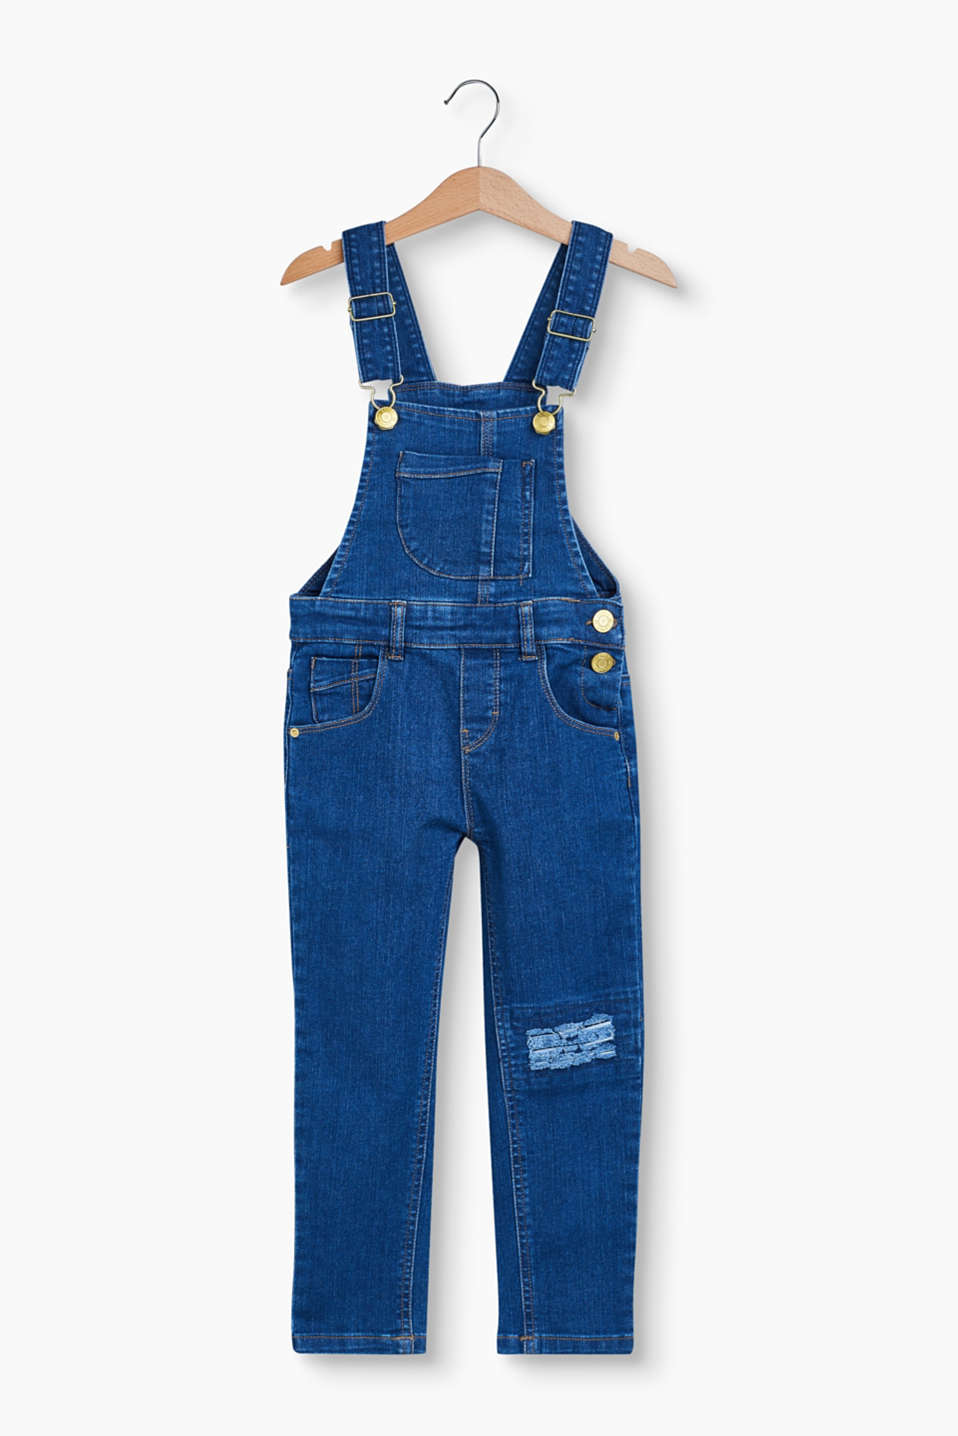 A must-have piece for casual girls: Stretch denim dungarees with ripped effects and gold tone logo buttons